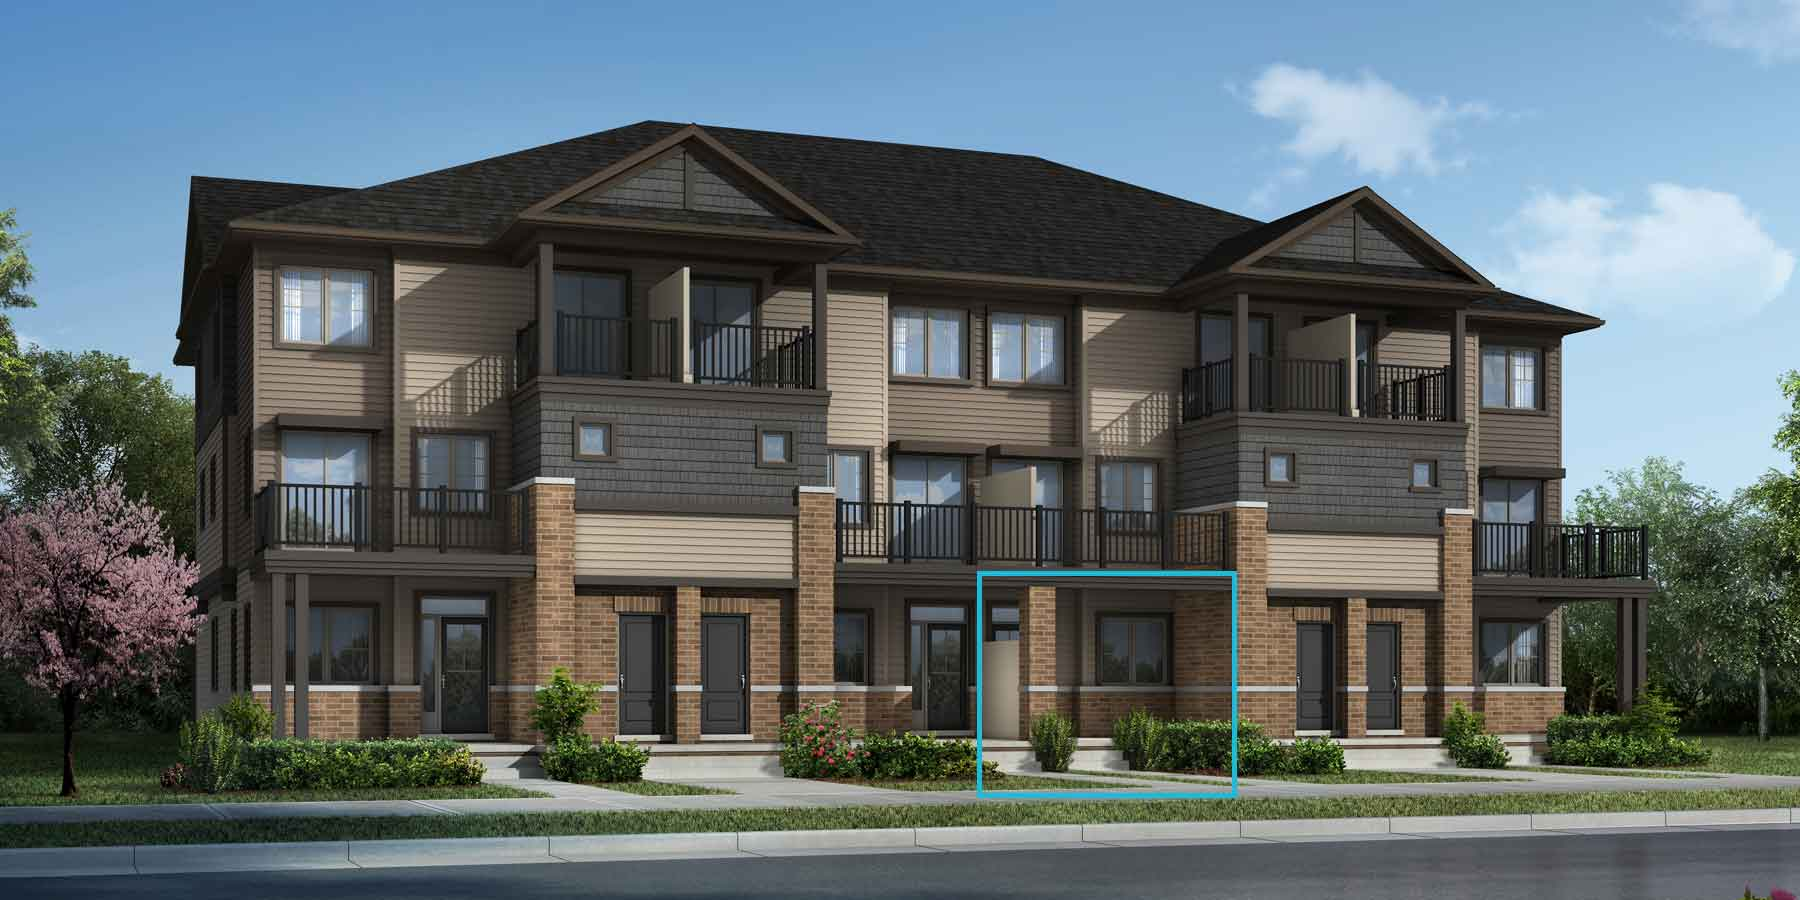 Foxglove Plan TownHomes at Promenade in Barrhaven Ontario by Mattamy Homes